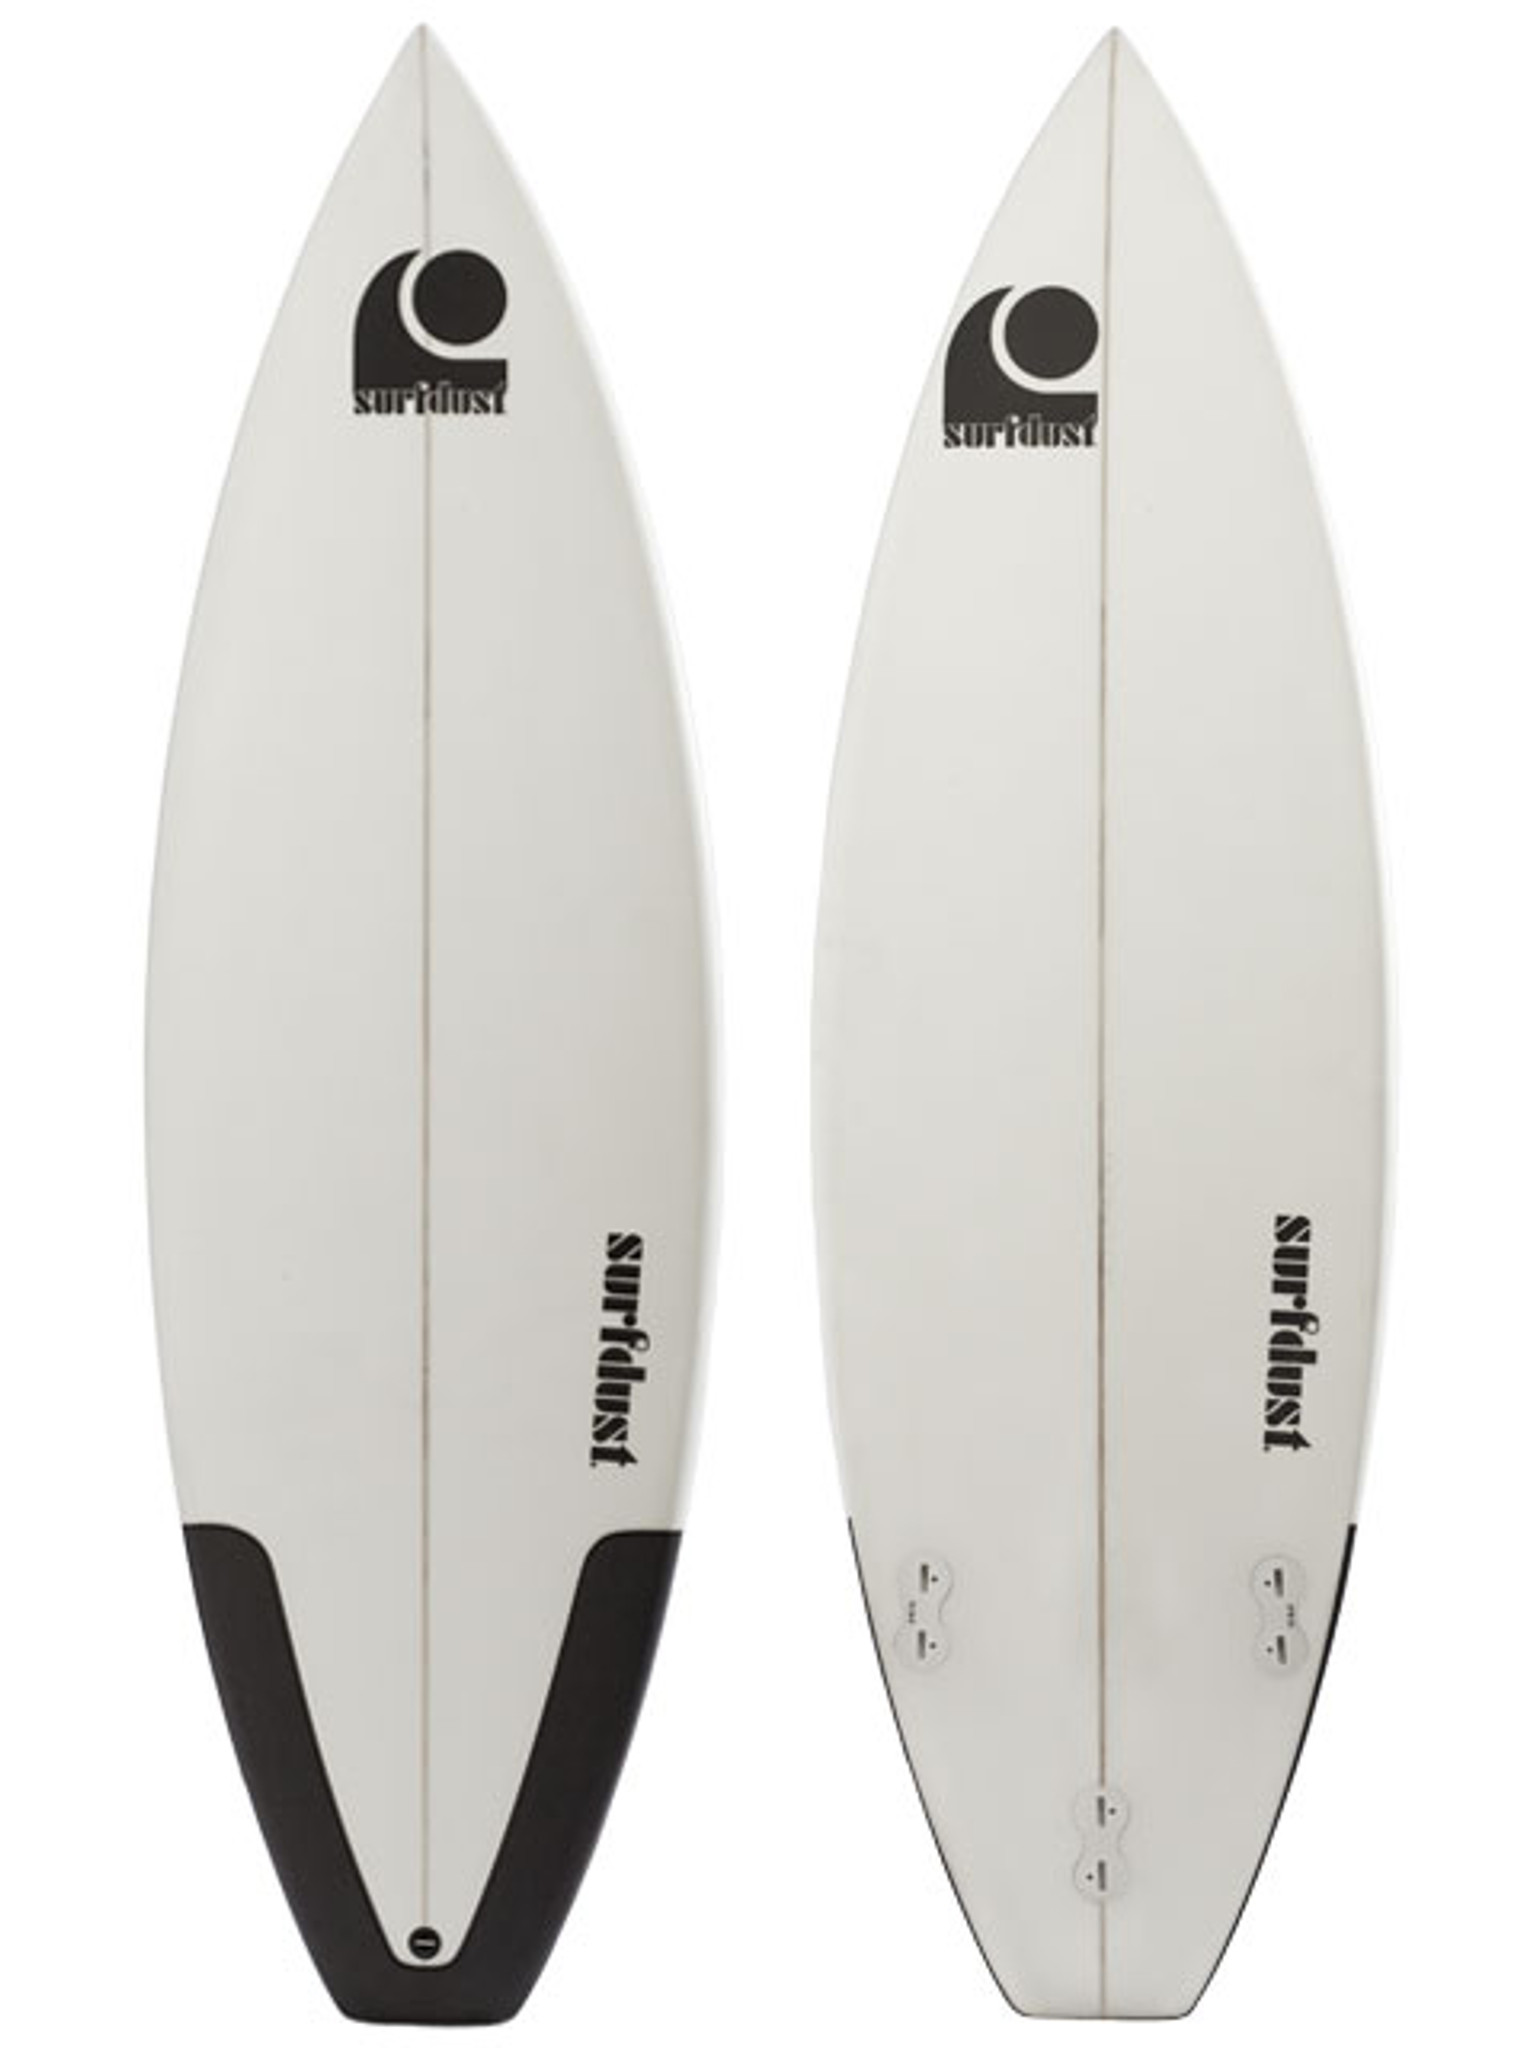 5.4ft Surfboards PRO Grom Series